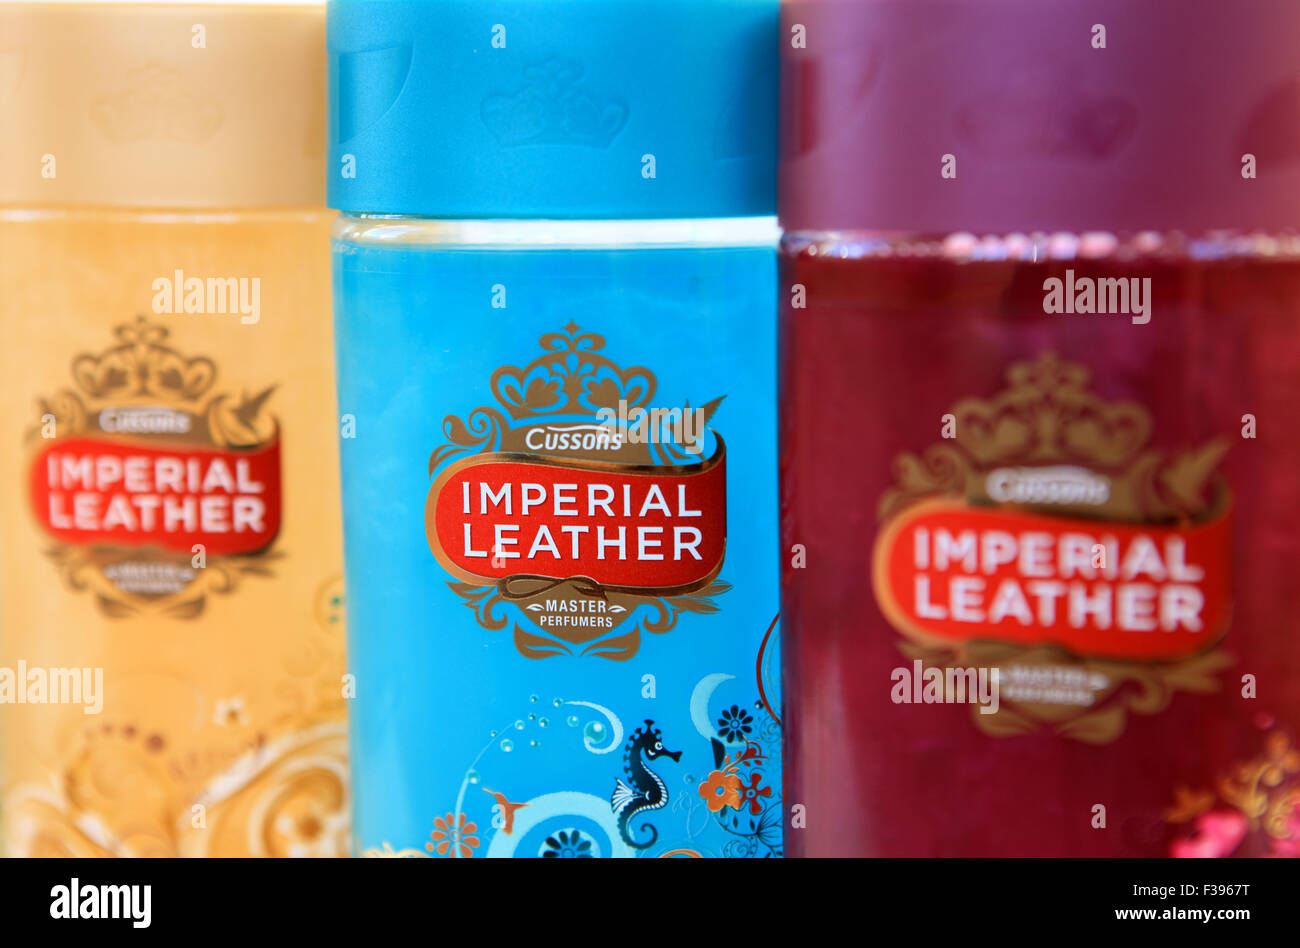 Cussons Imperial Leather bath soak - Stock Image